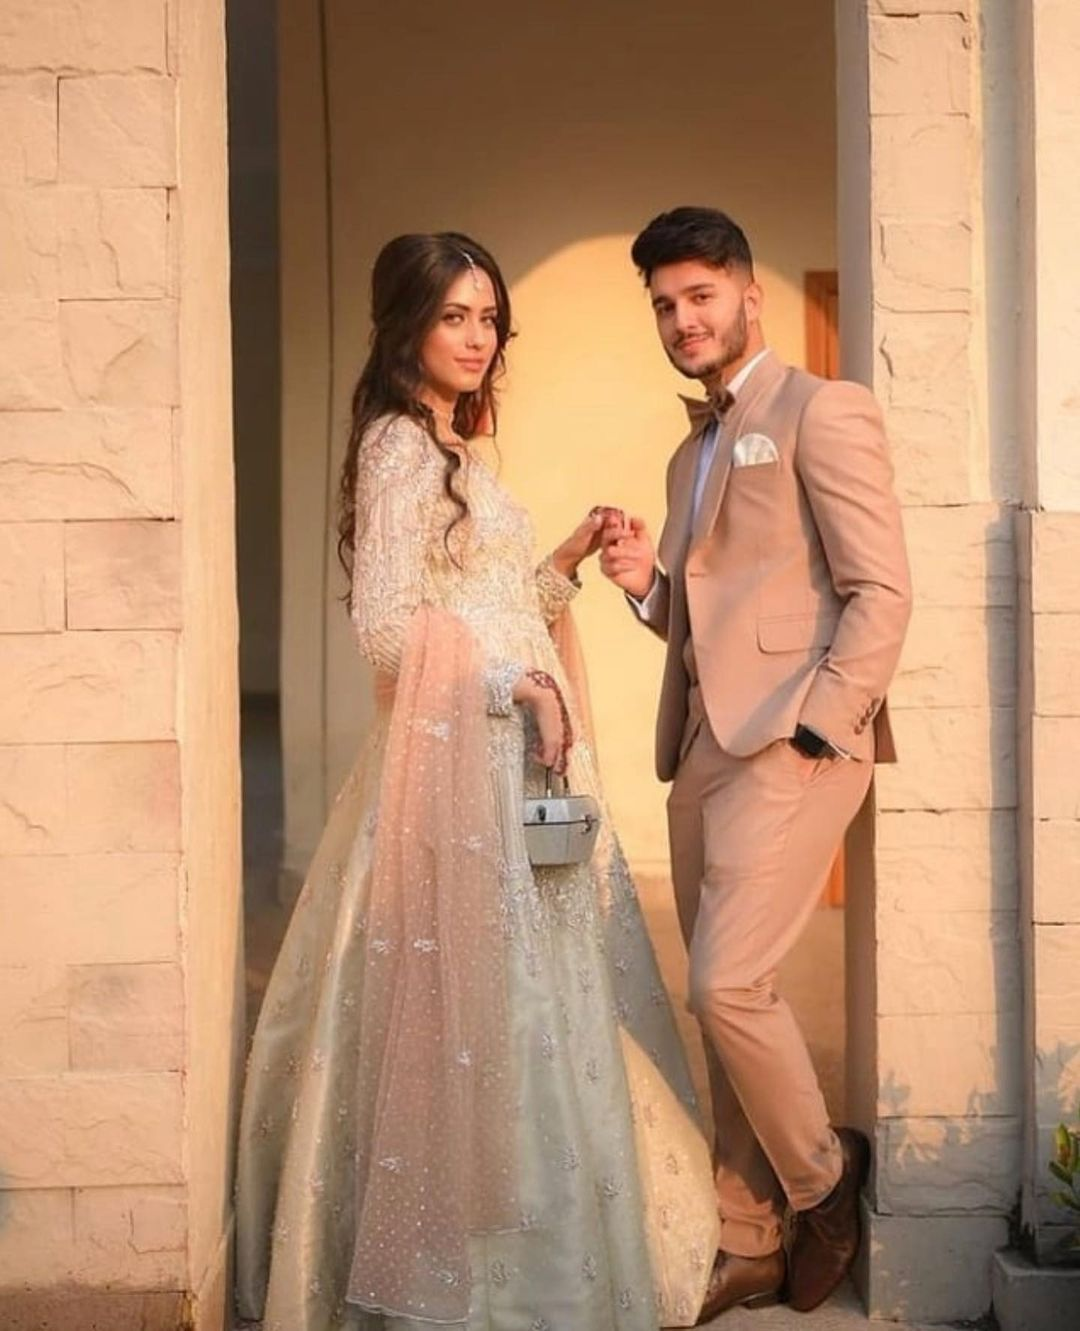 Shahveer Jafry Engagement - Pictures And Videos